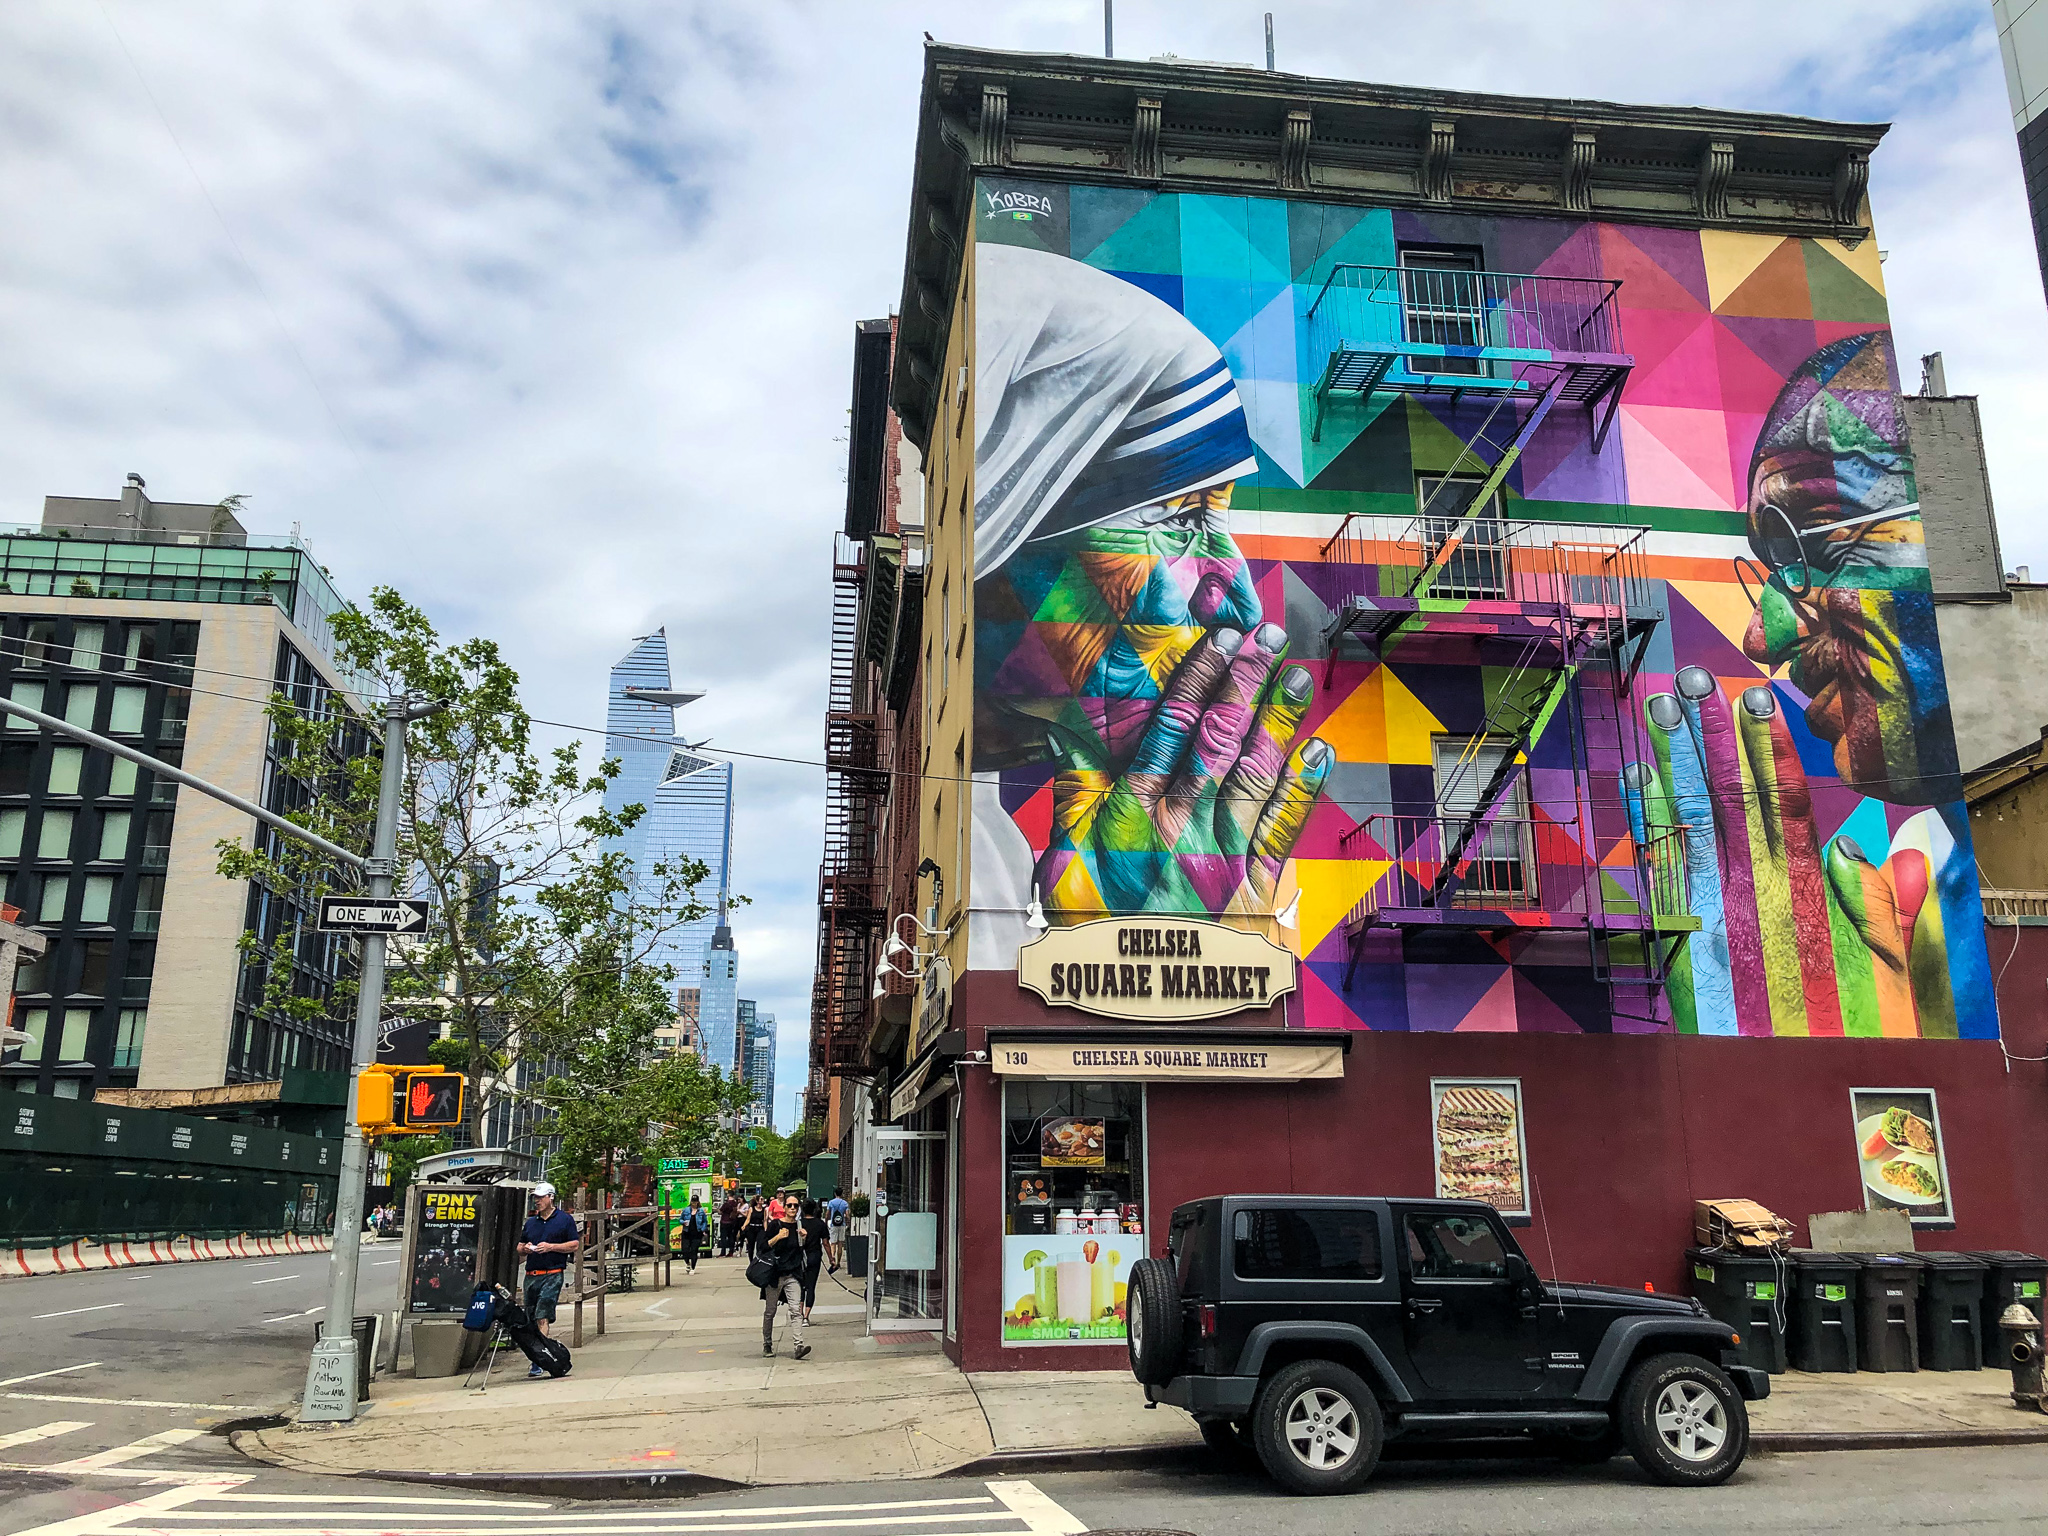 street art is among the things to do in chelsea